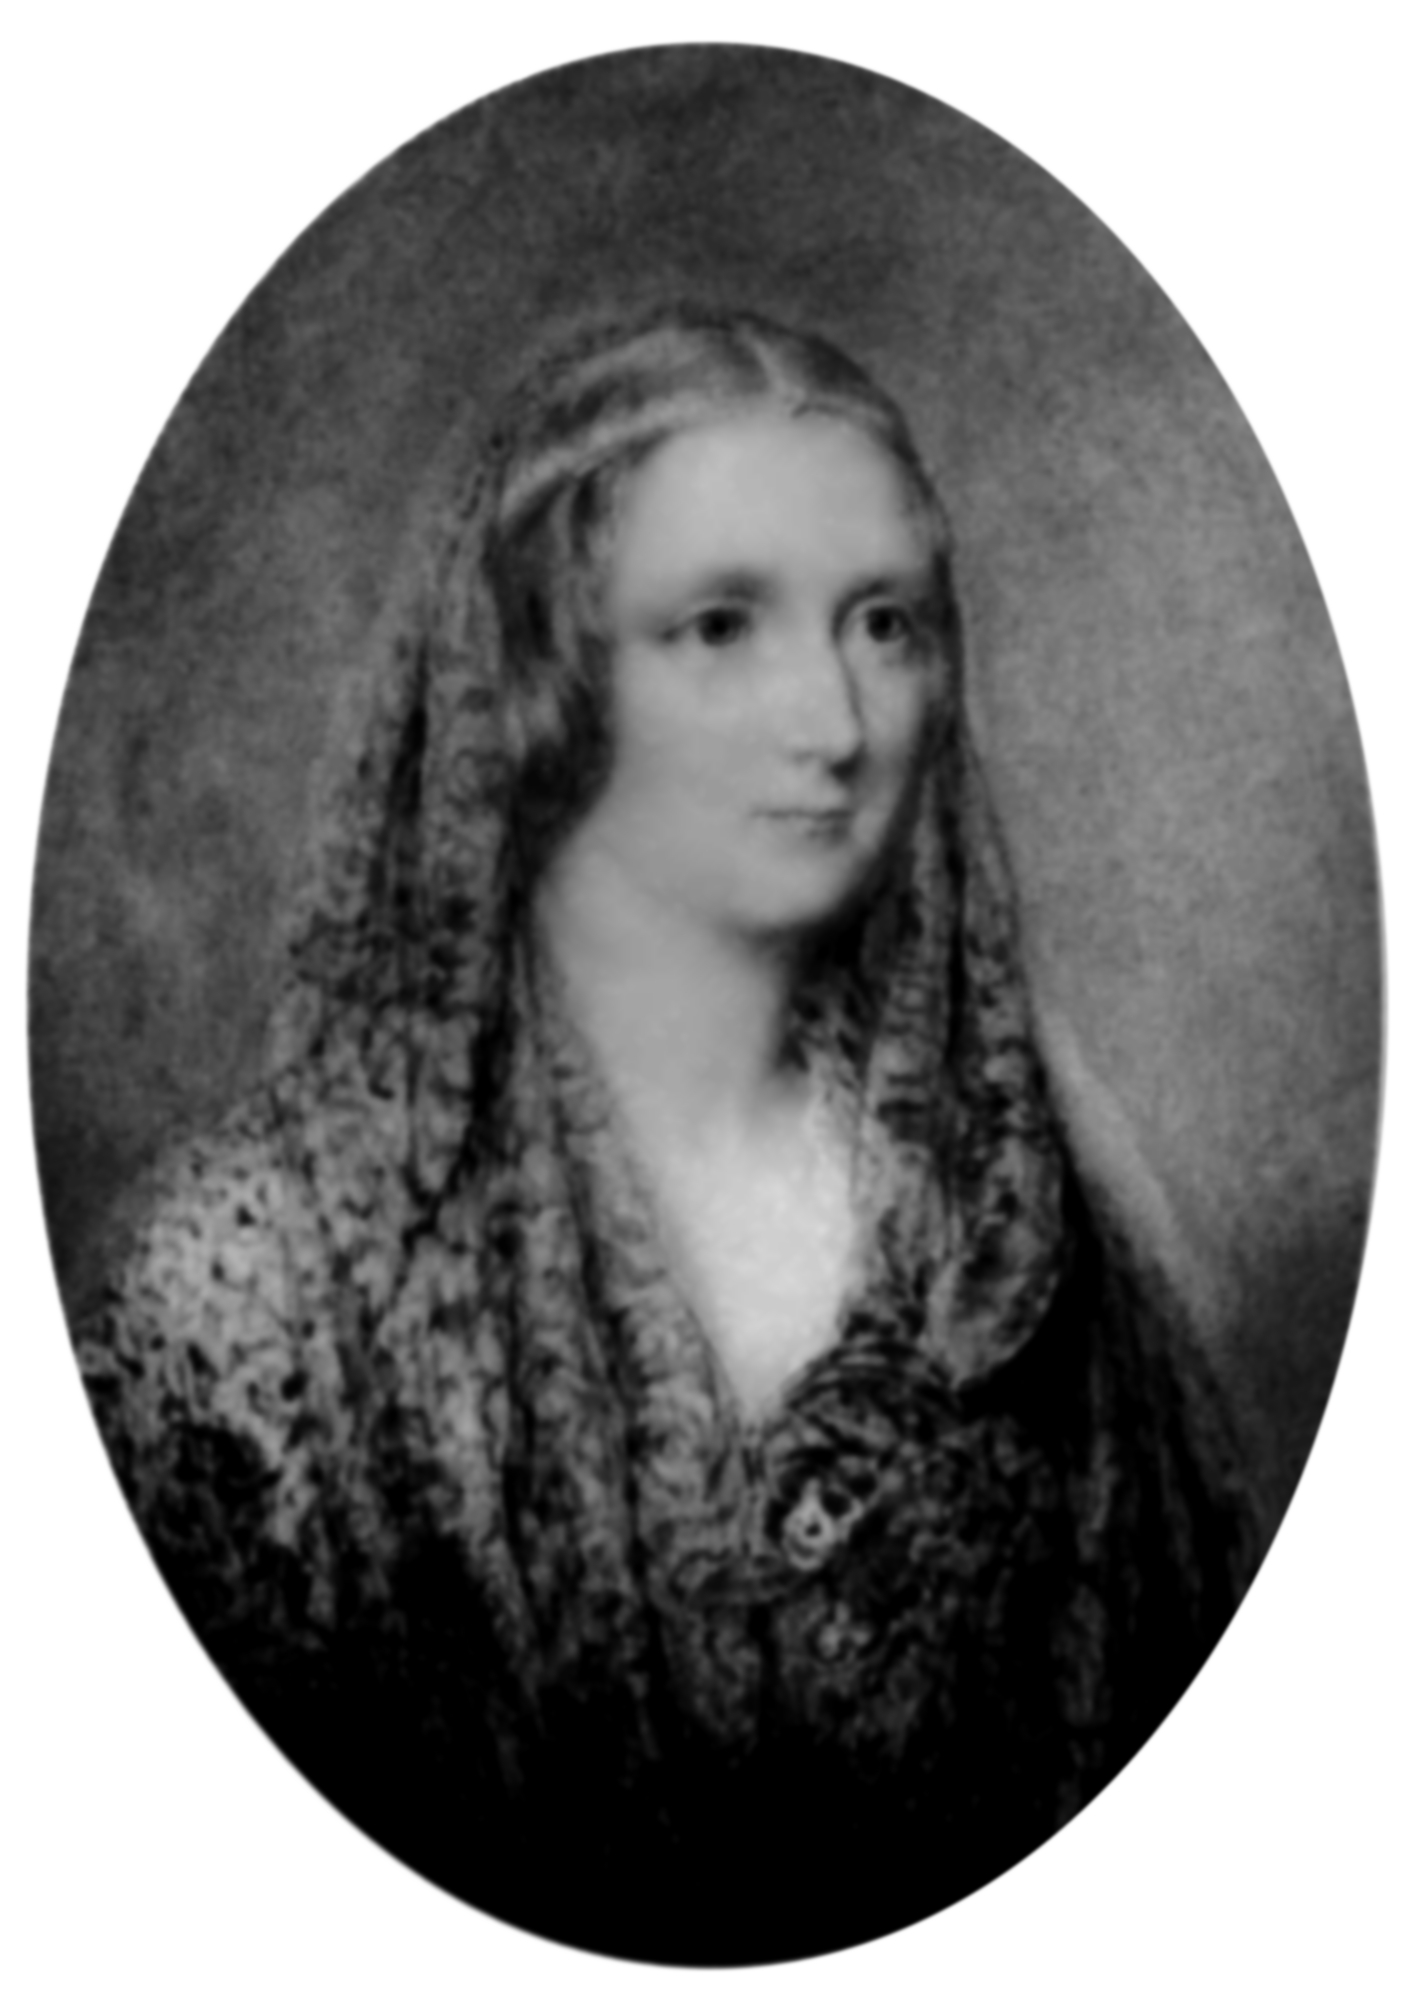 the life and works of mary shelley Mary shelley, london mary shelley (n e mary wollstonecraft godwin 30 august 1797 (1829-46) support the growing view that mary shelley remained a political radical throughout her life mary shelley's works often argue that cooperation and sympathy.